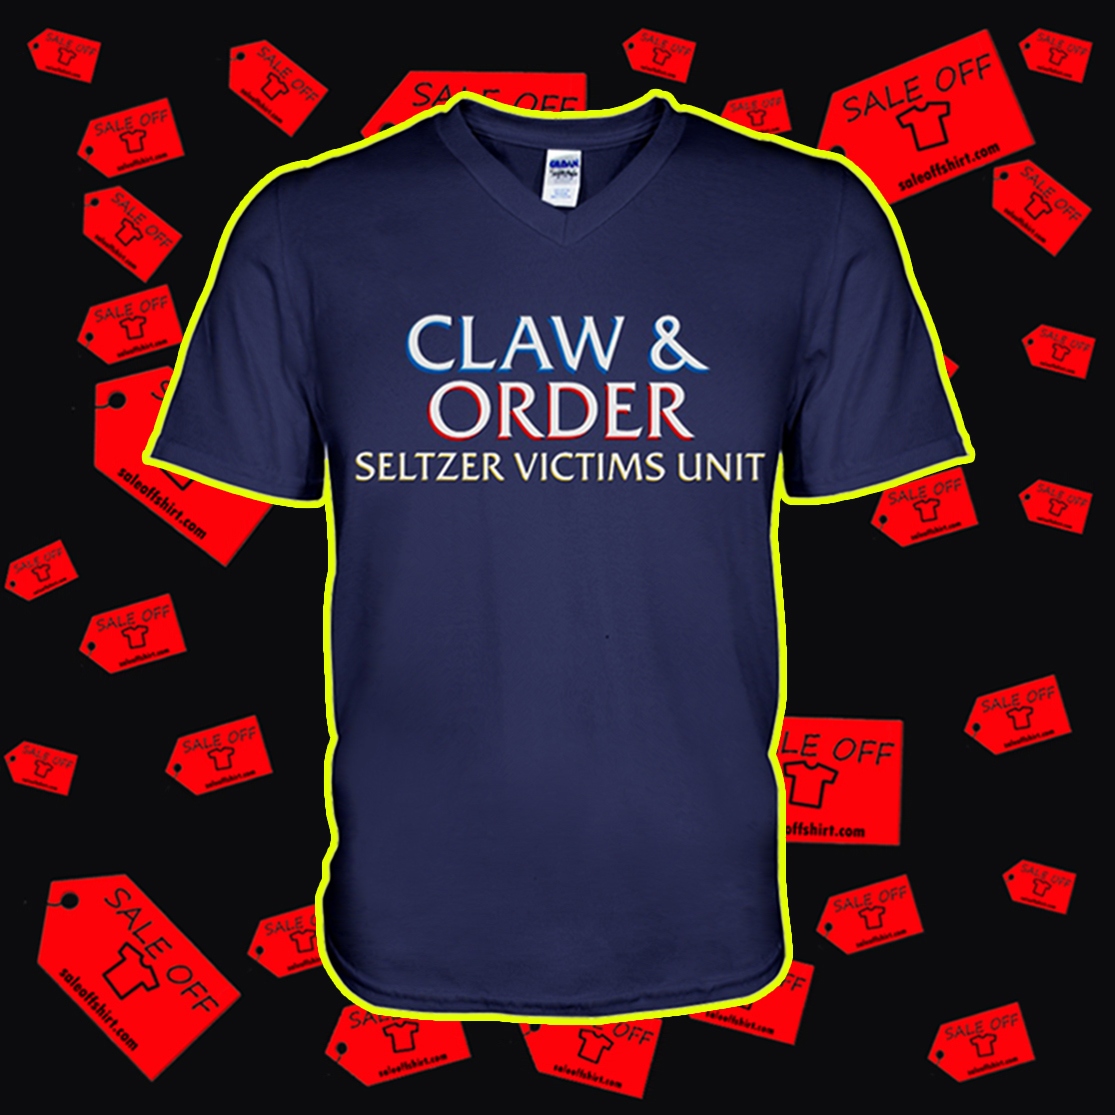 Claw and order seltzer victims unit v-neck